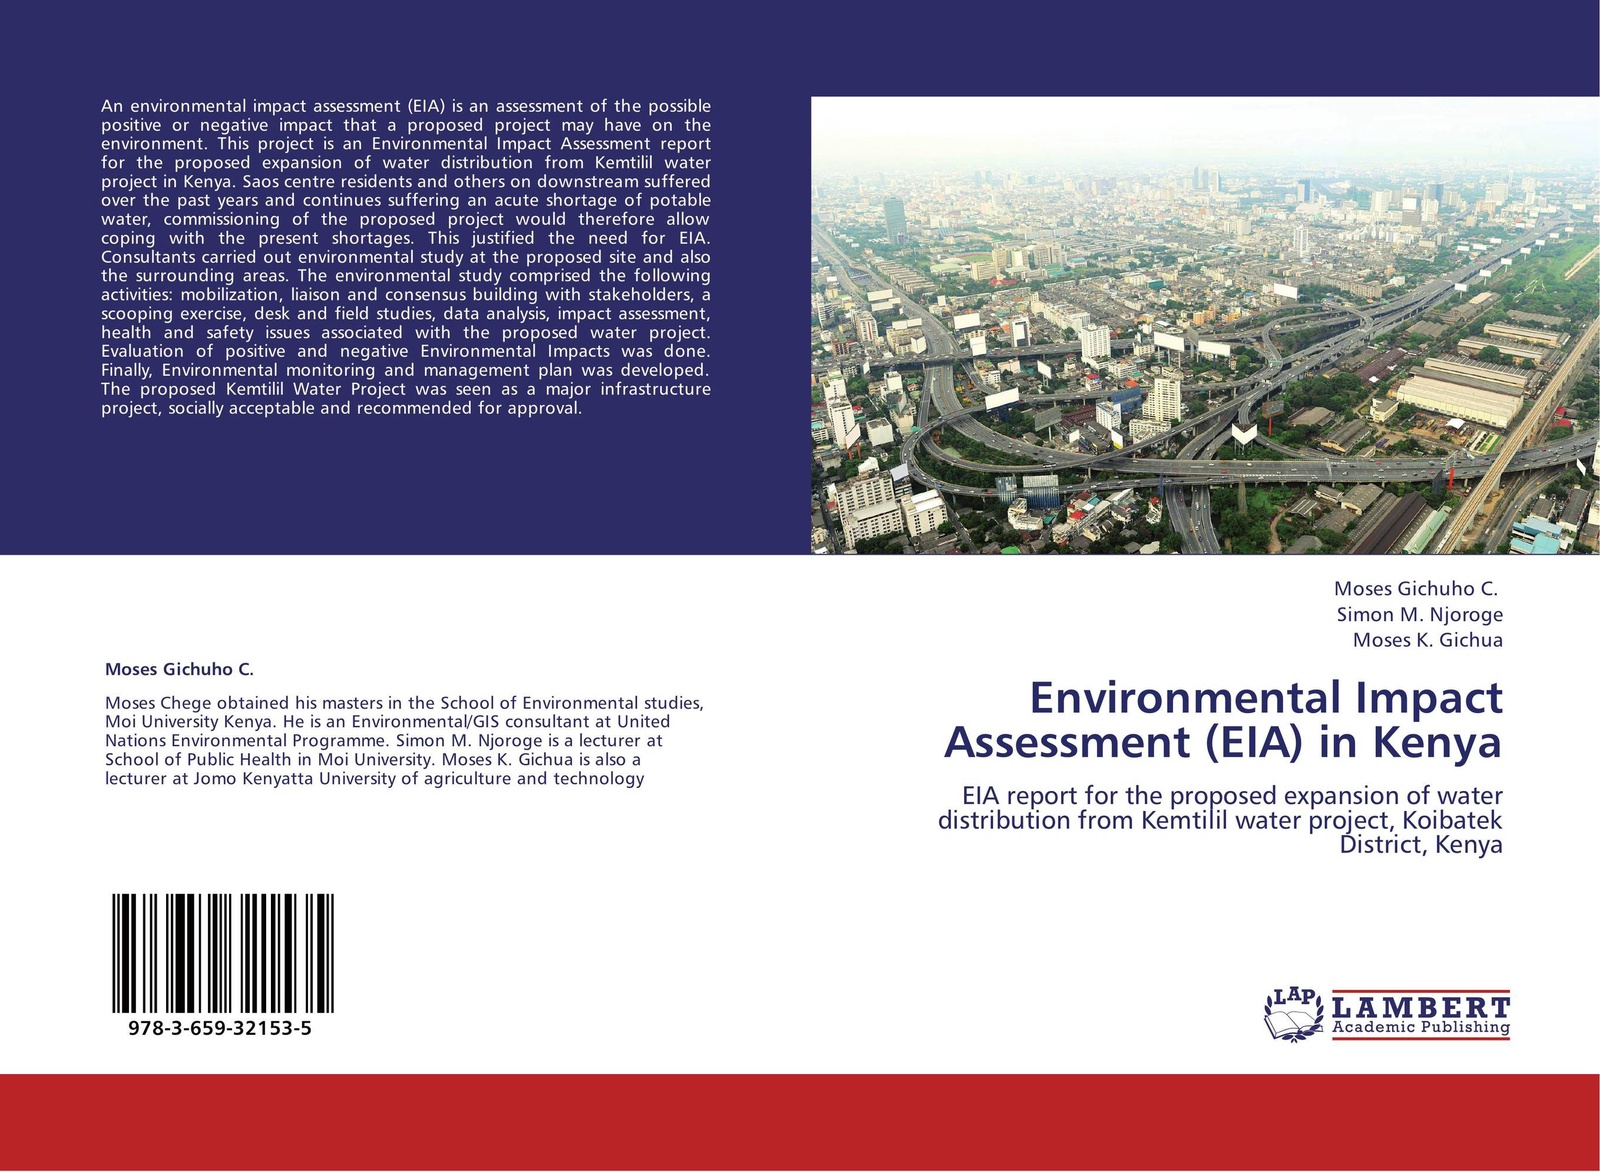 Фото - Moses Gichuho C.,Simon M. Njoroge and Moses K. Gichua Environmental Impact Assessment (EIA) in Kenya m tauhid ur rahman an environmental impact assessment for proposed housing development